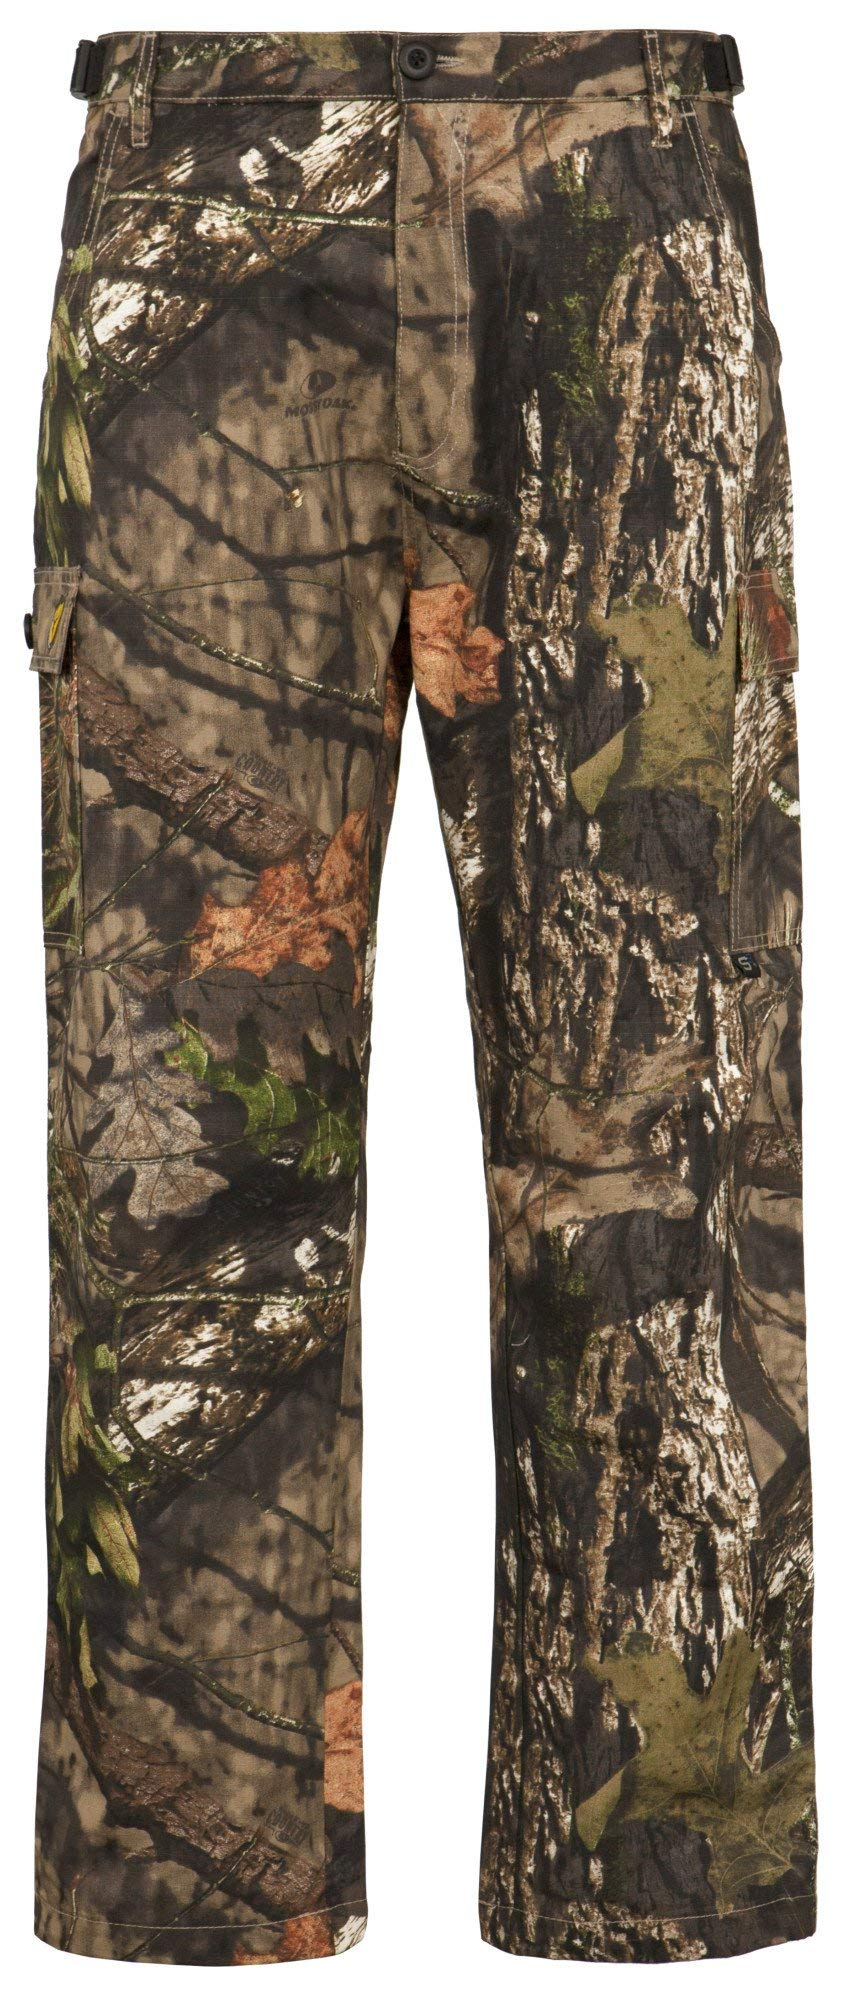 Scentblocker Men's 6-Pocket Pants, Mossy Oak Country, XL by Scent Blocker